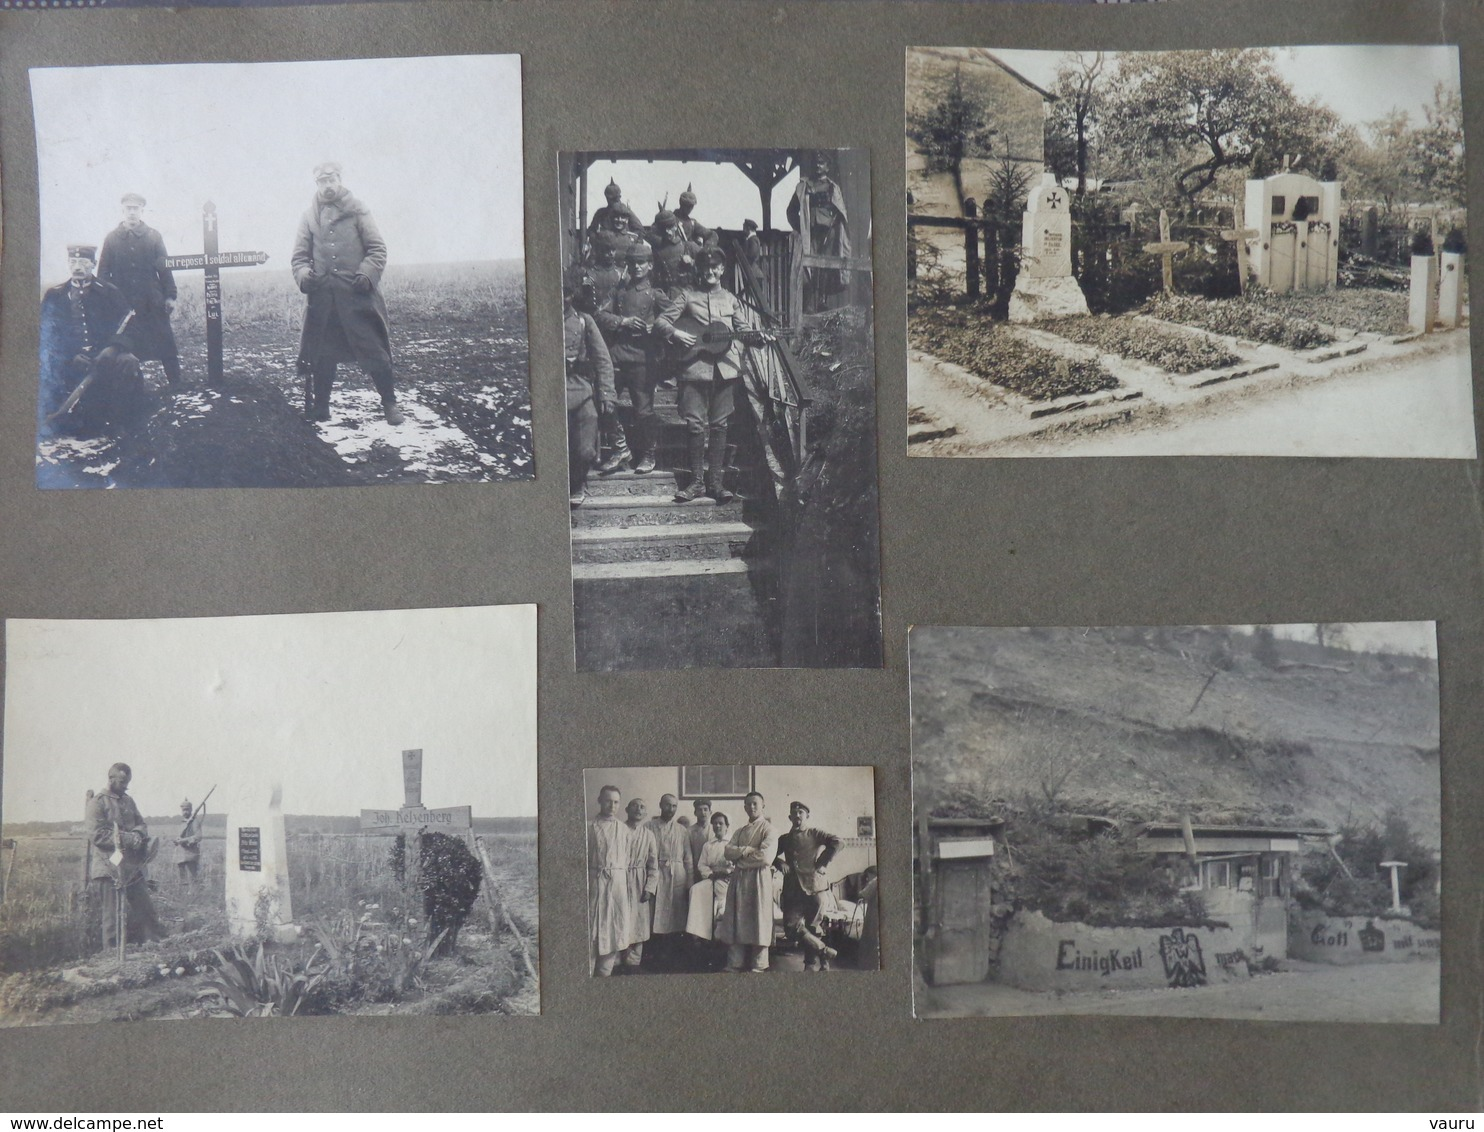 MILITARIA  GUERRE 14/18 ARMEE ALLEMANDE SOLDATS LOT 10  PHOTOS RUINES BOMBE HOPITAL CROIX ROUGE TOMBE CIMETIERE C - War, Military